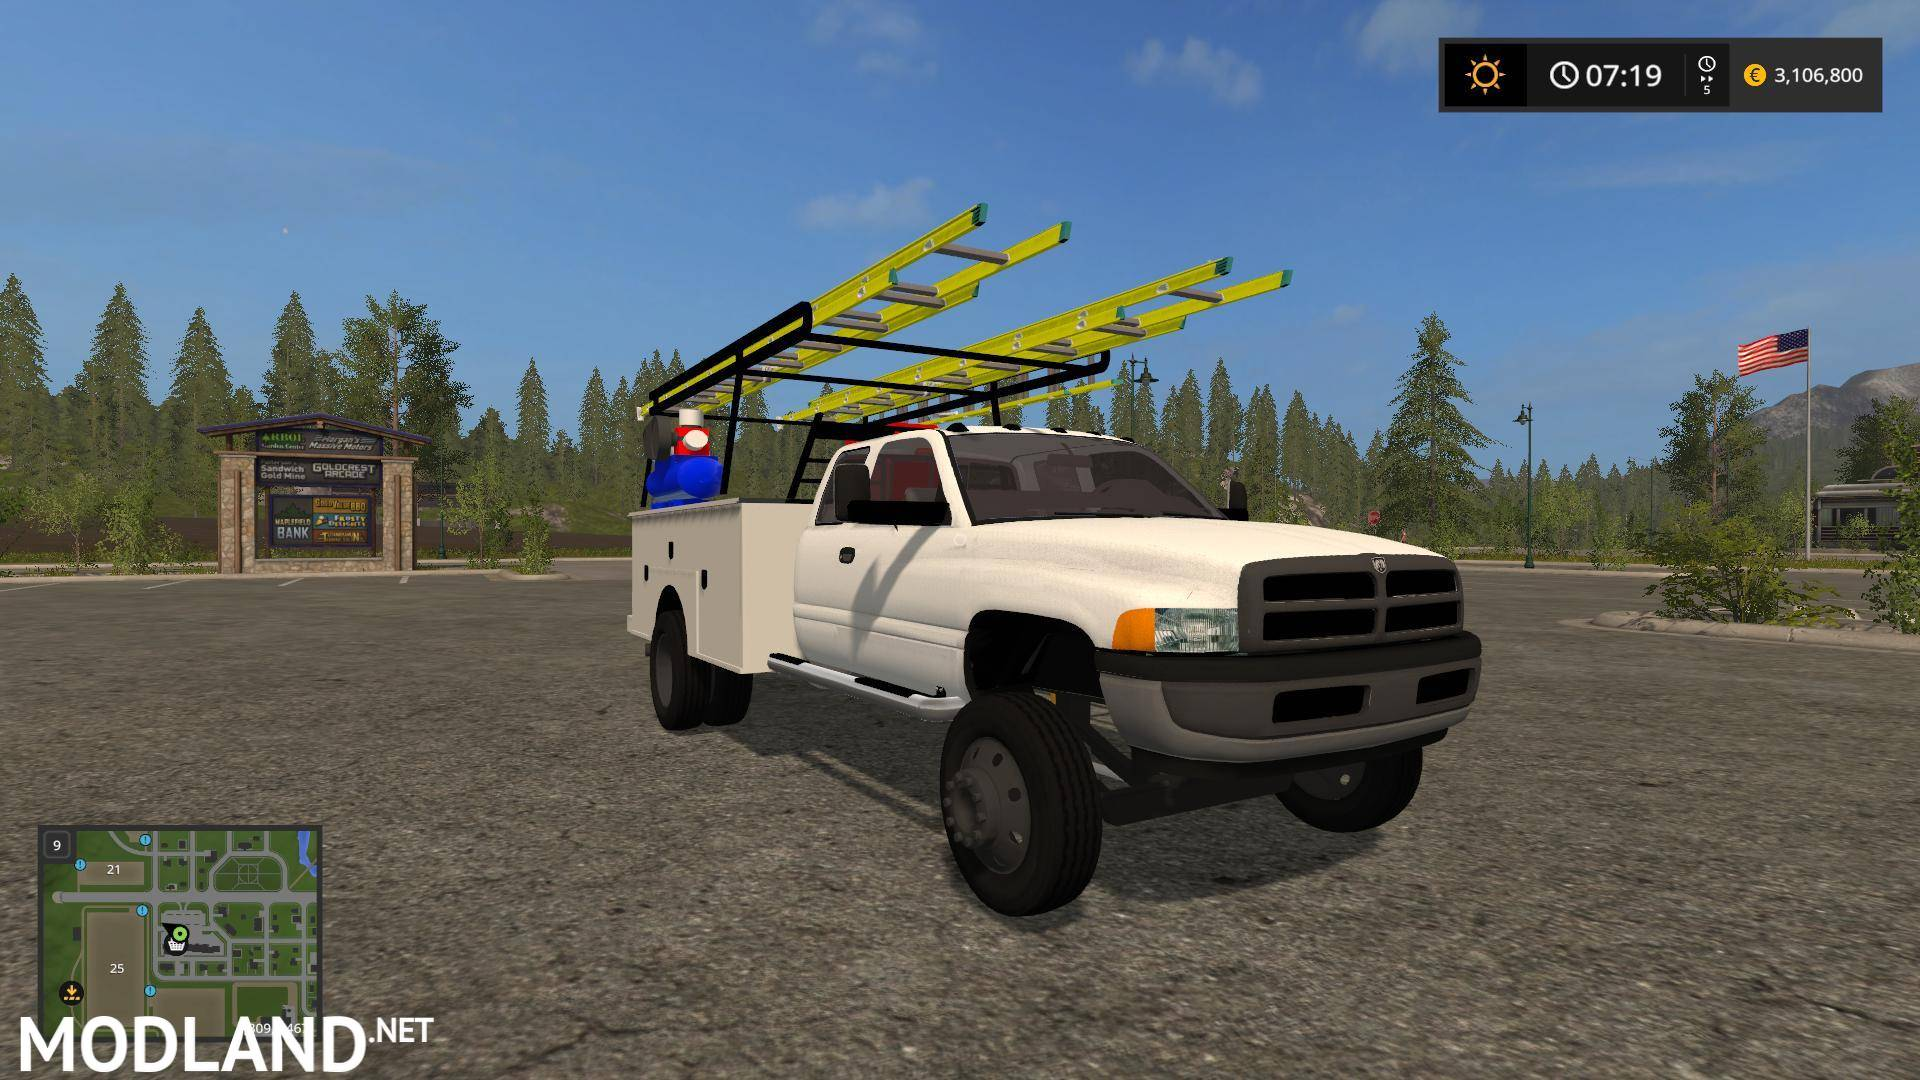 Hqdefault together with I furthermore F additionally Ford F X besides Dodge Wt V Modland. on 2015 dodge ram 3500